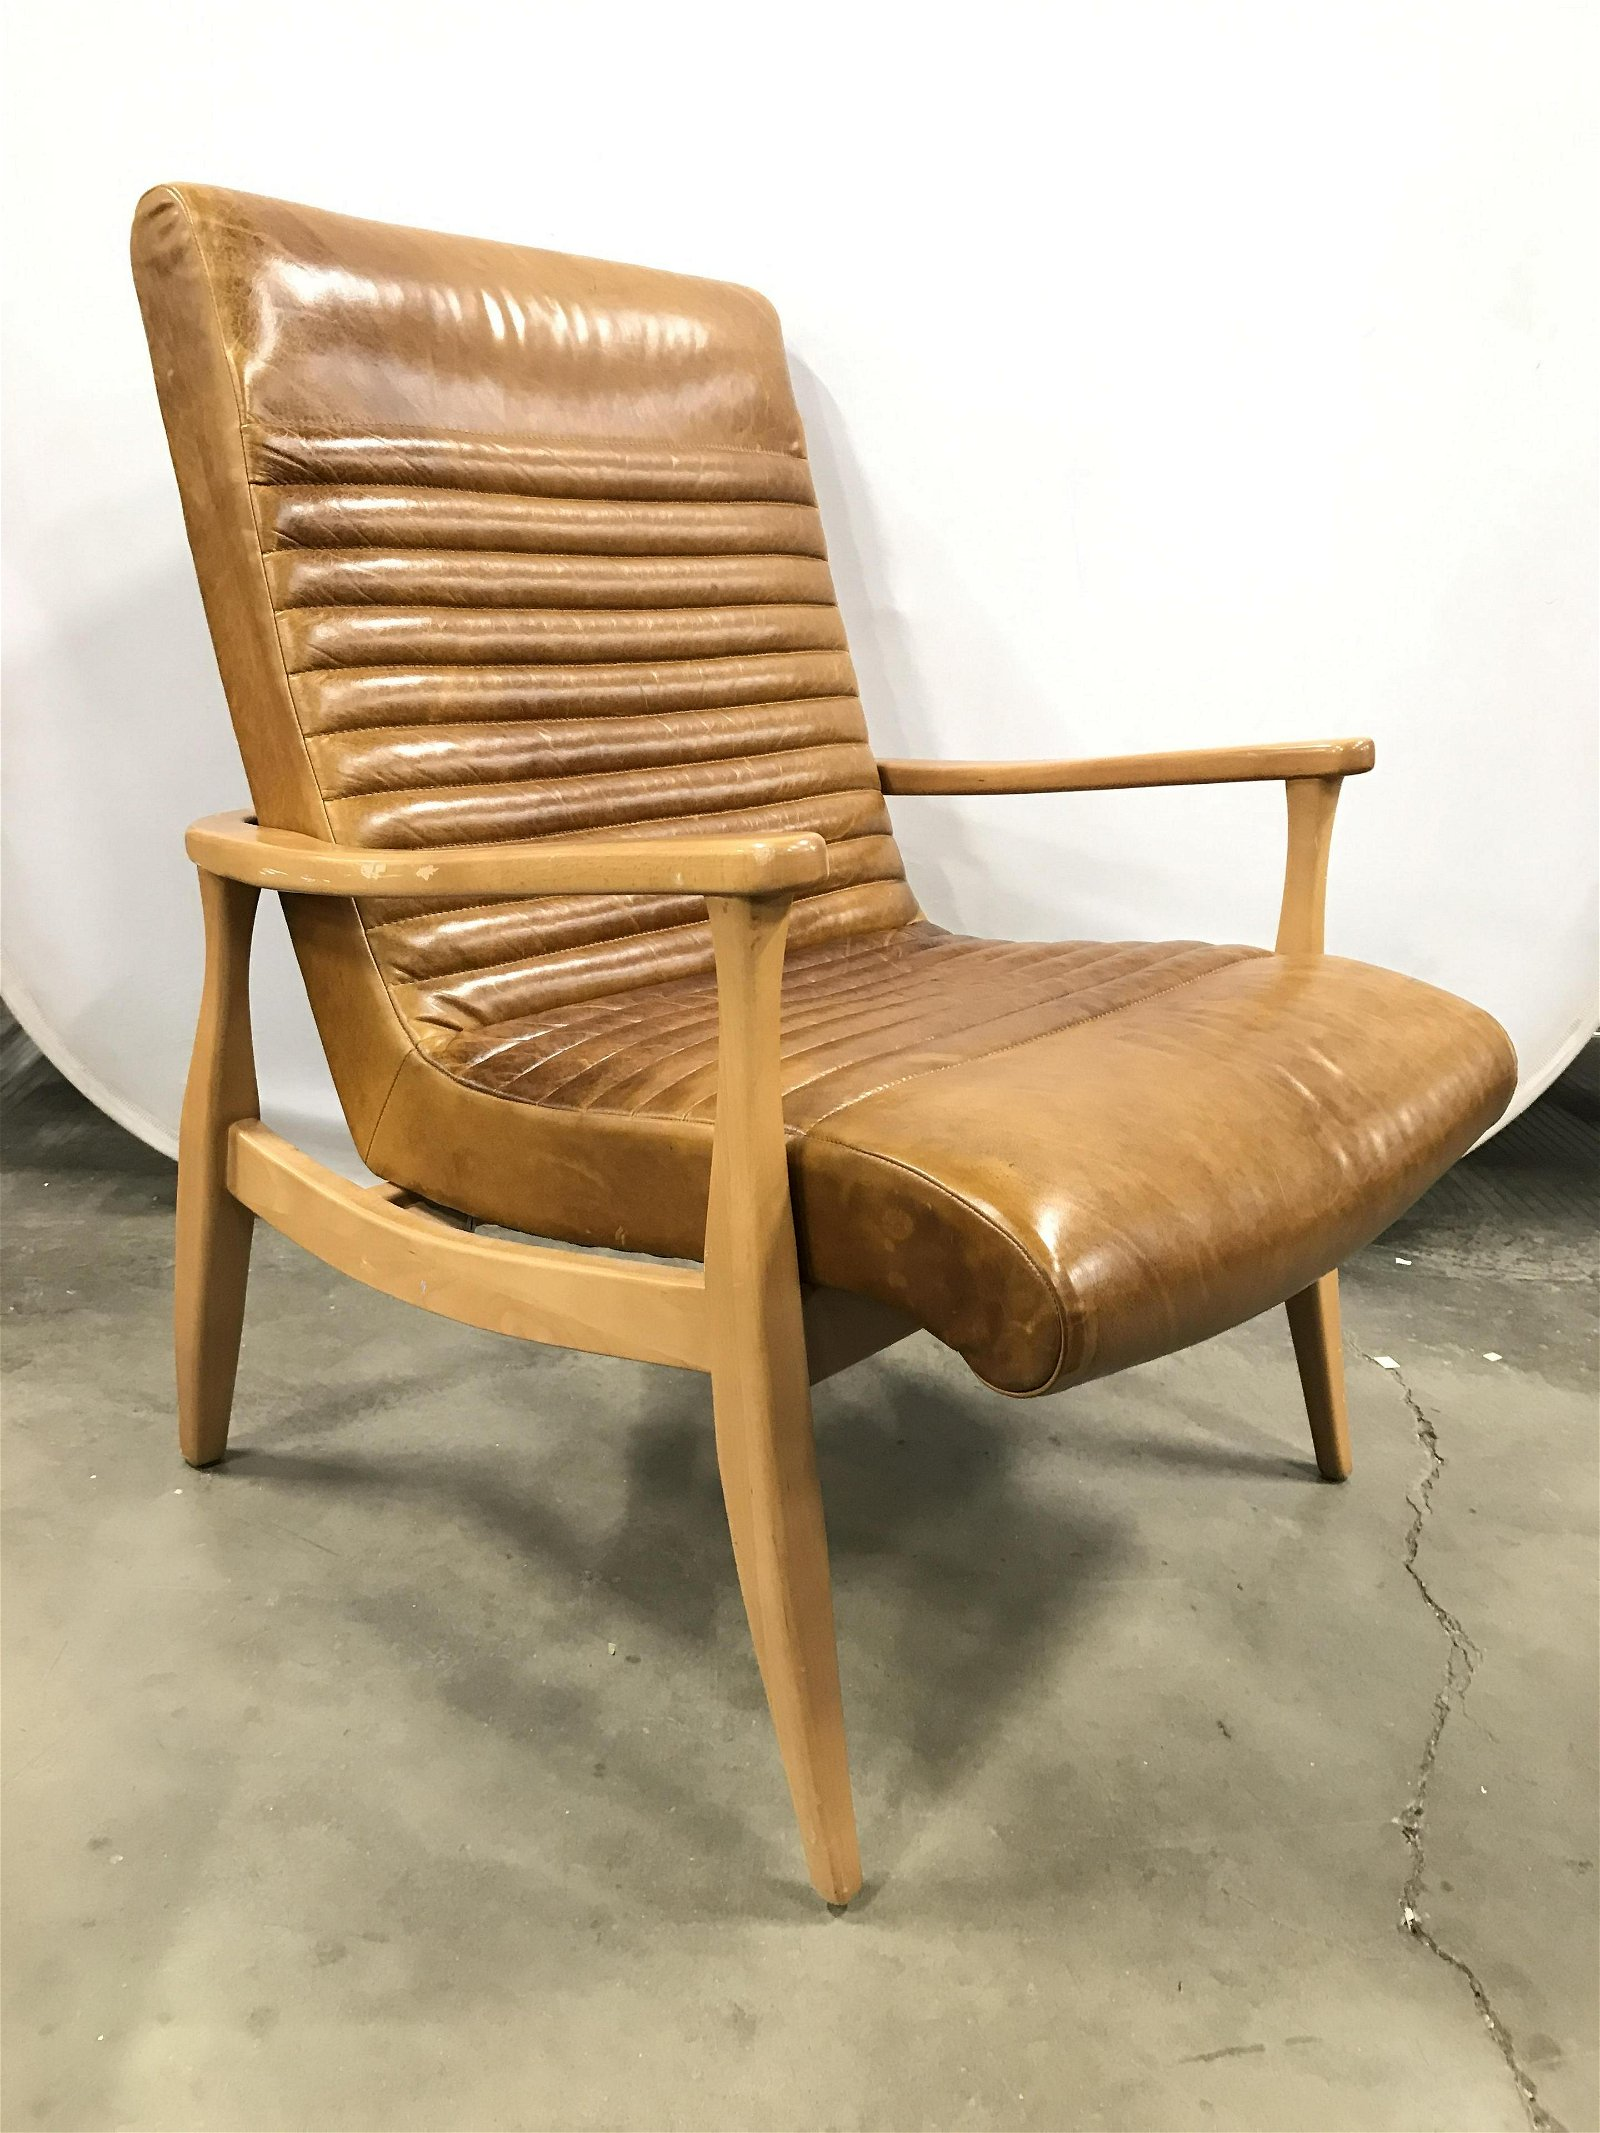 SHERRILL FURNITURE CO Leather MCM Armchair